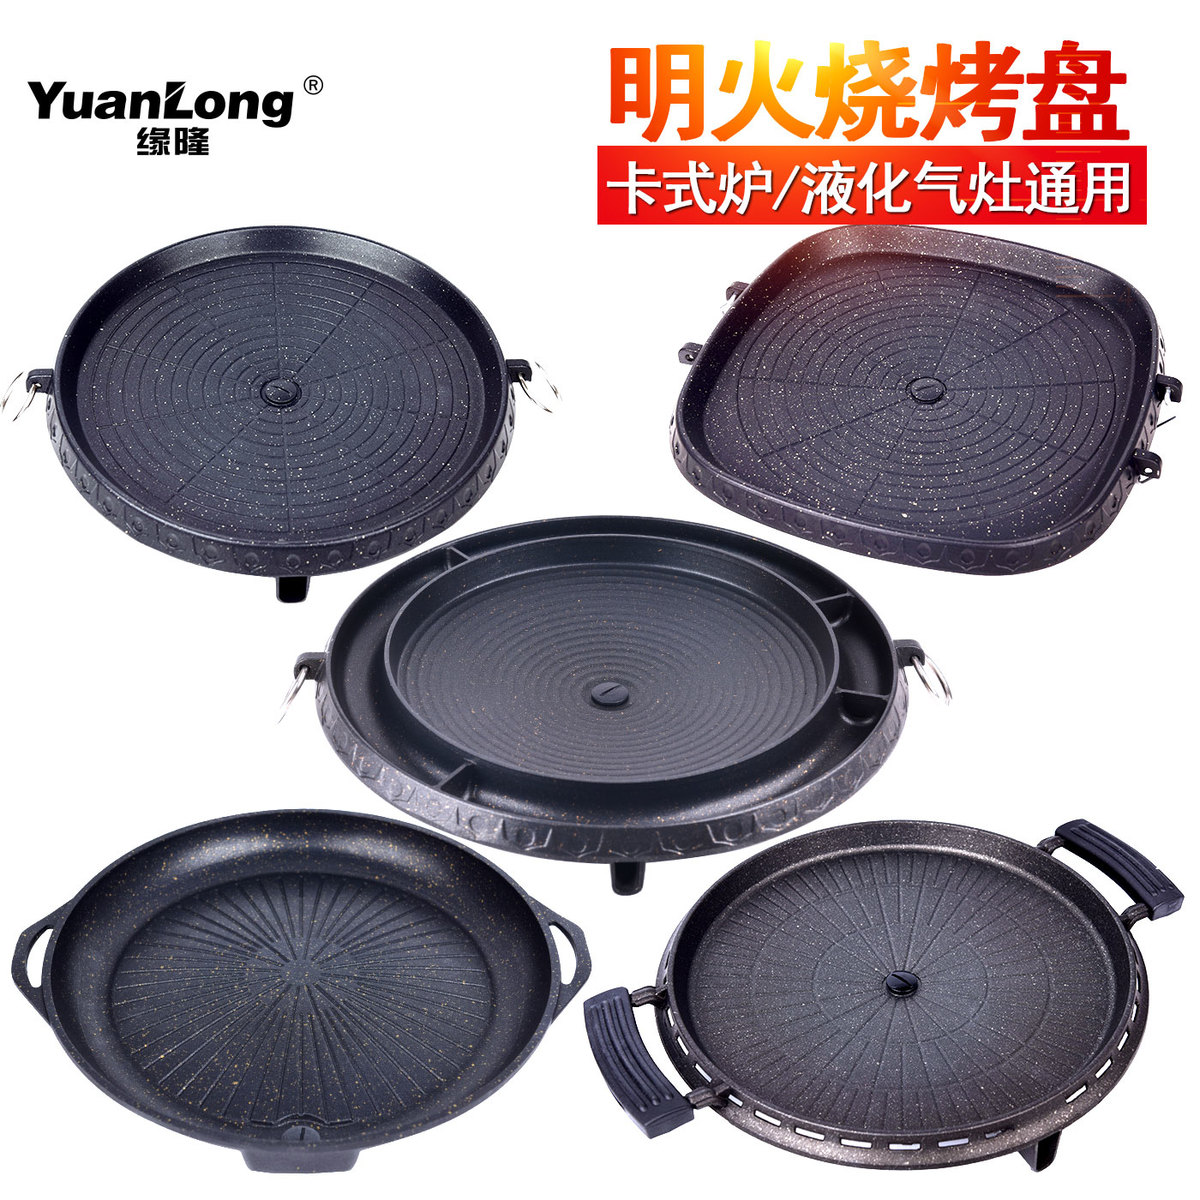 Korean barbecue dish square thickened stone roasted meat plate home cooking BBQ pan egg cake open fire baking round dish